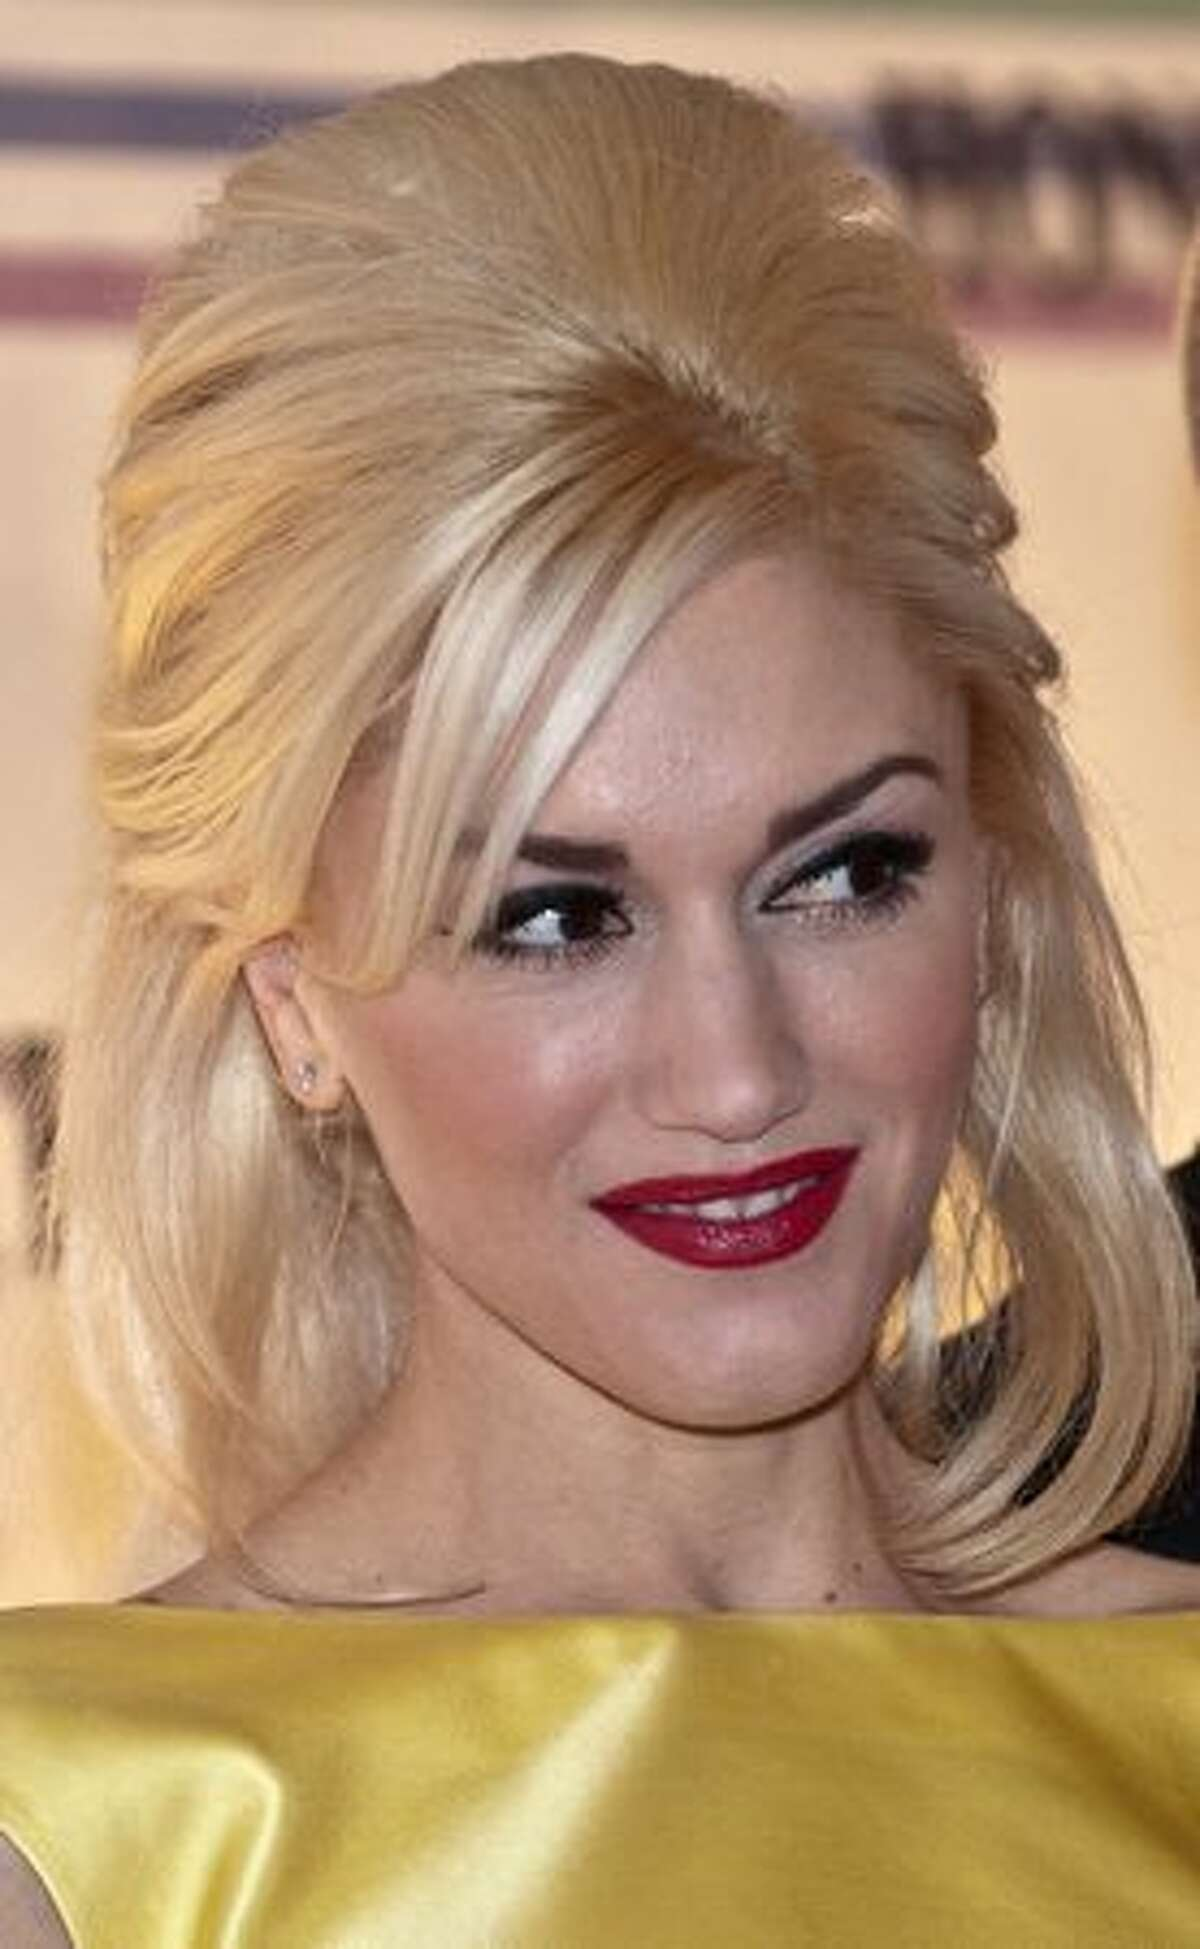 Singer Gwen Stefani poses on the red carpet of the Kennedy Center Honors gala performance at the Kennedy Center in Washington.